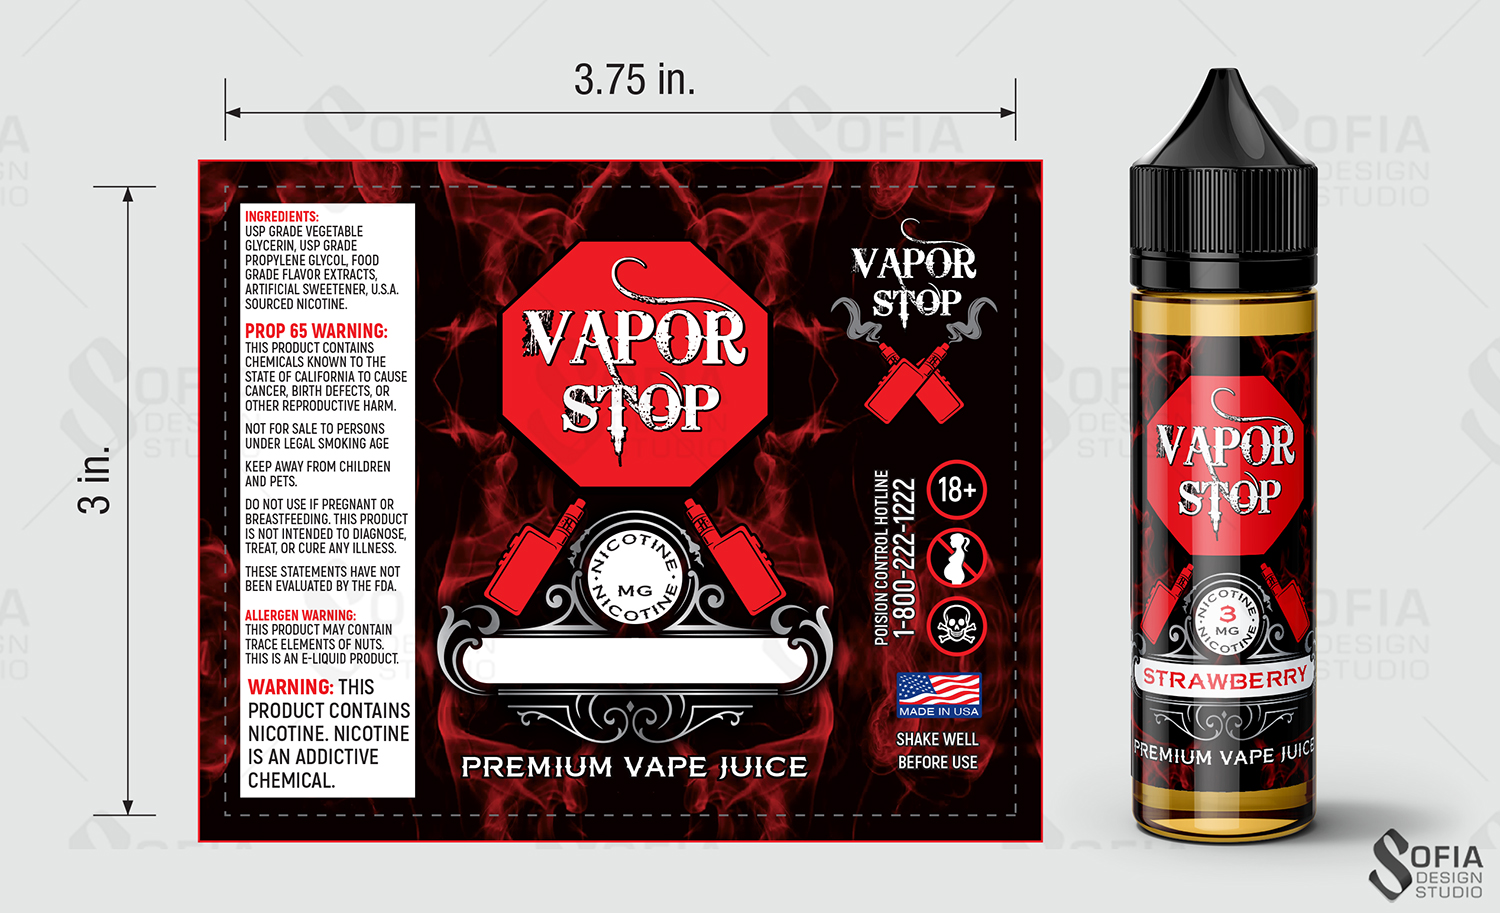 Elegant playful cigarette label design for vapor stop in united states design 17756673